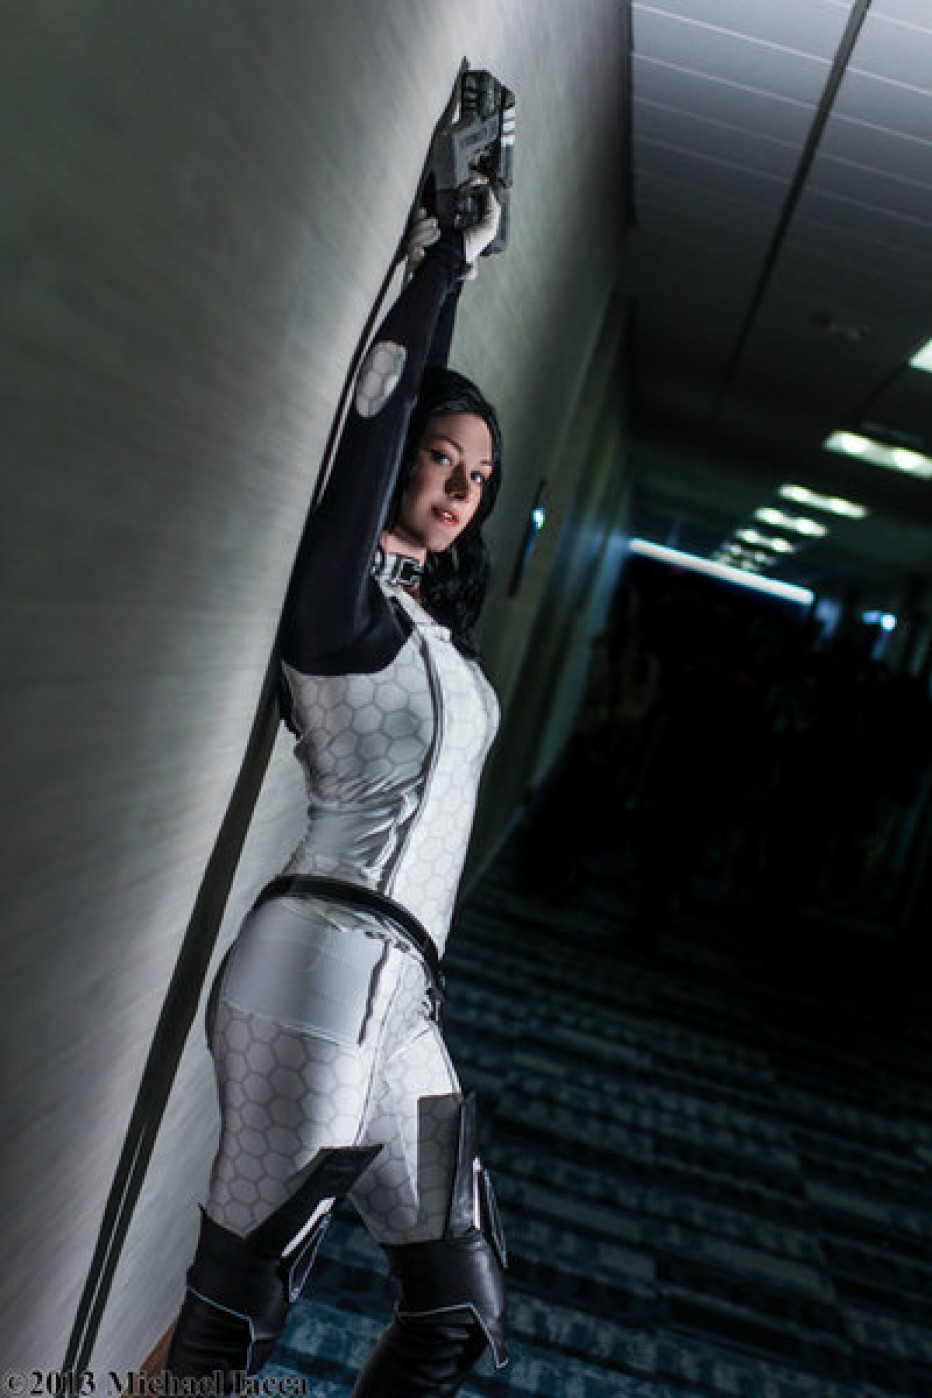 Mass-Effect-Miranda-Lawson-Cosplay-Gamers-Heroes-4.jpg